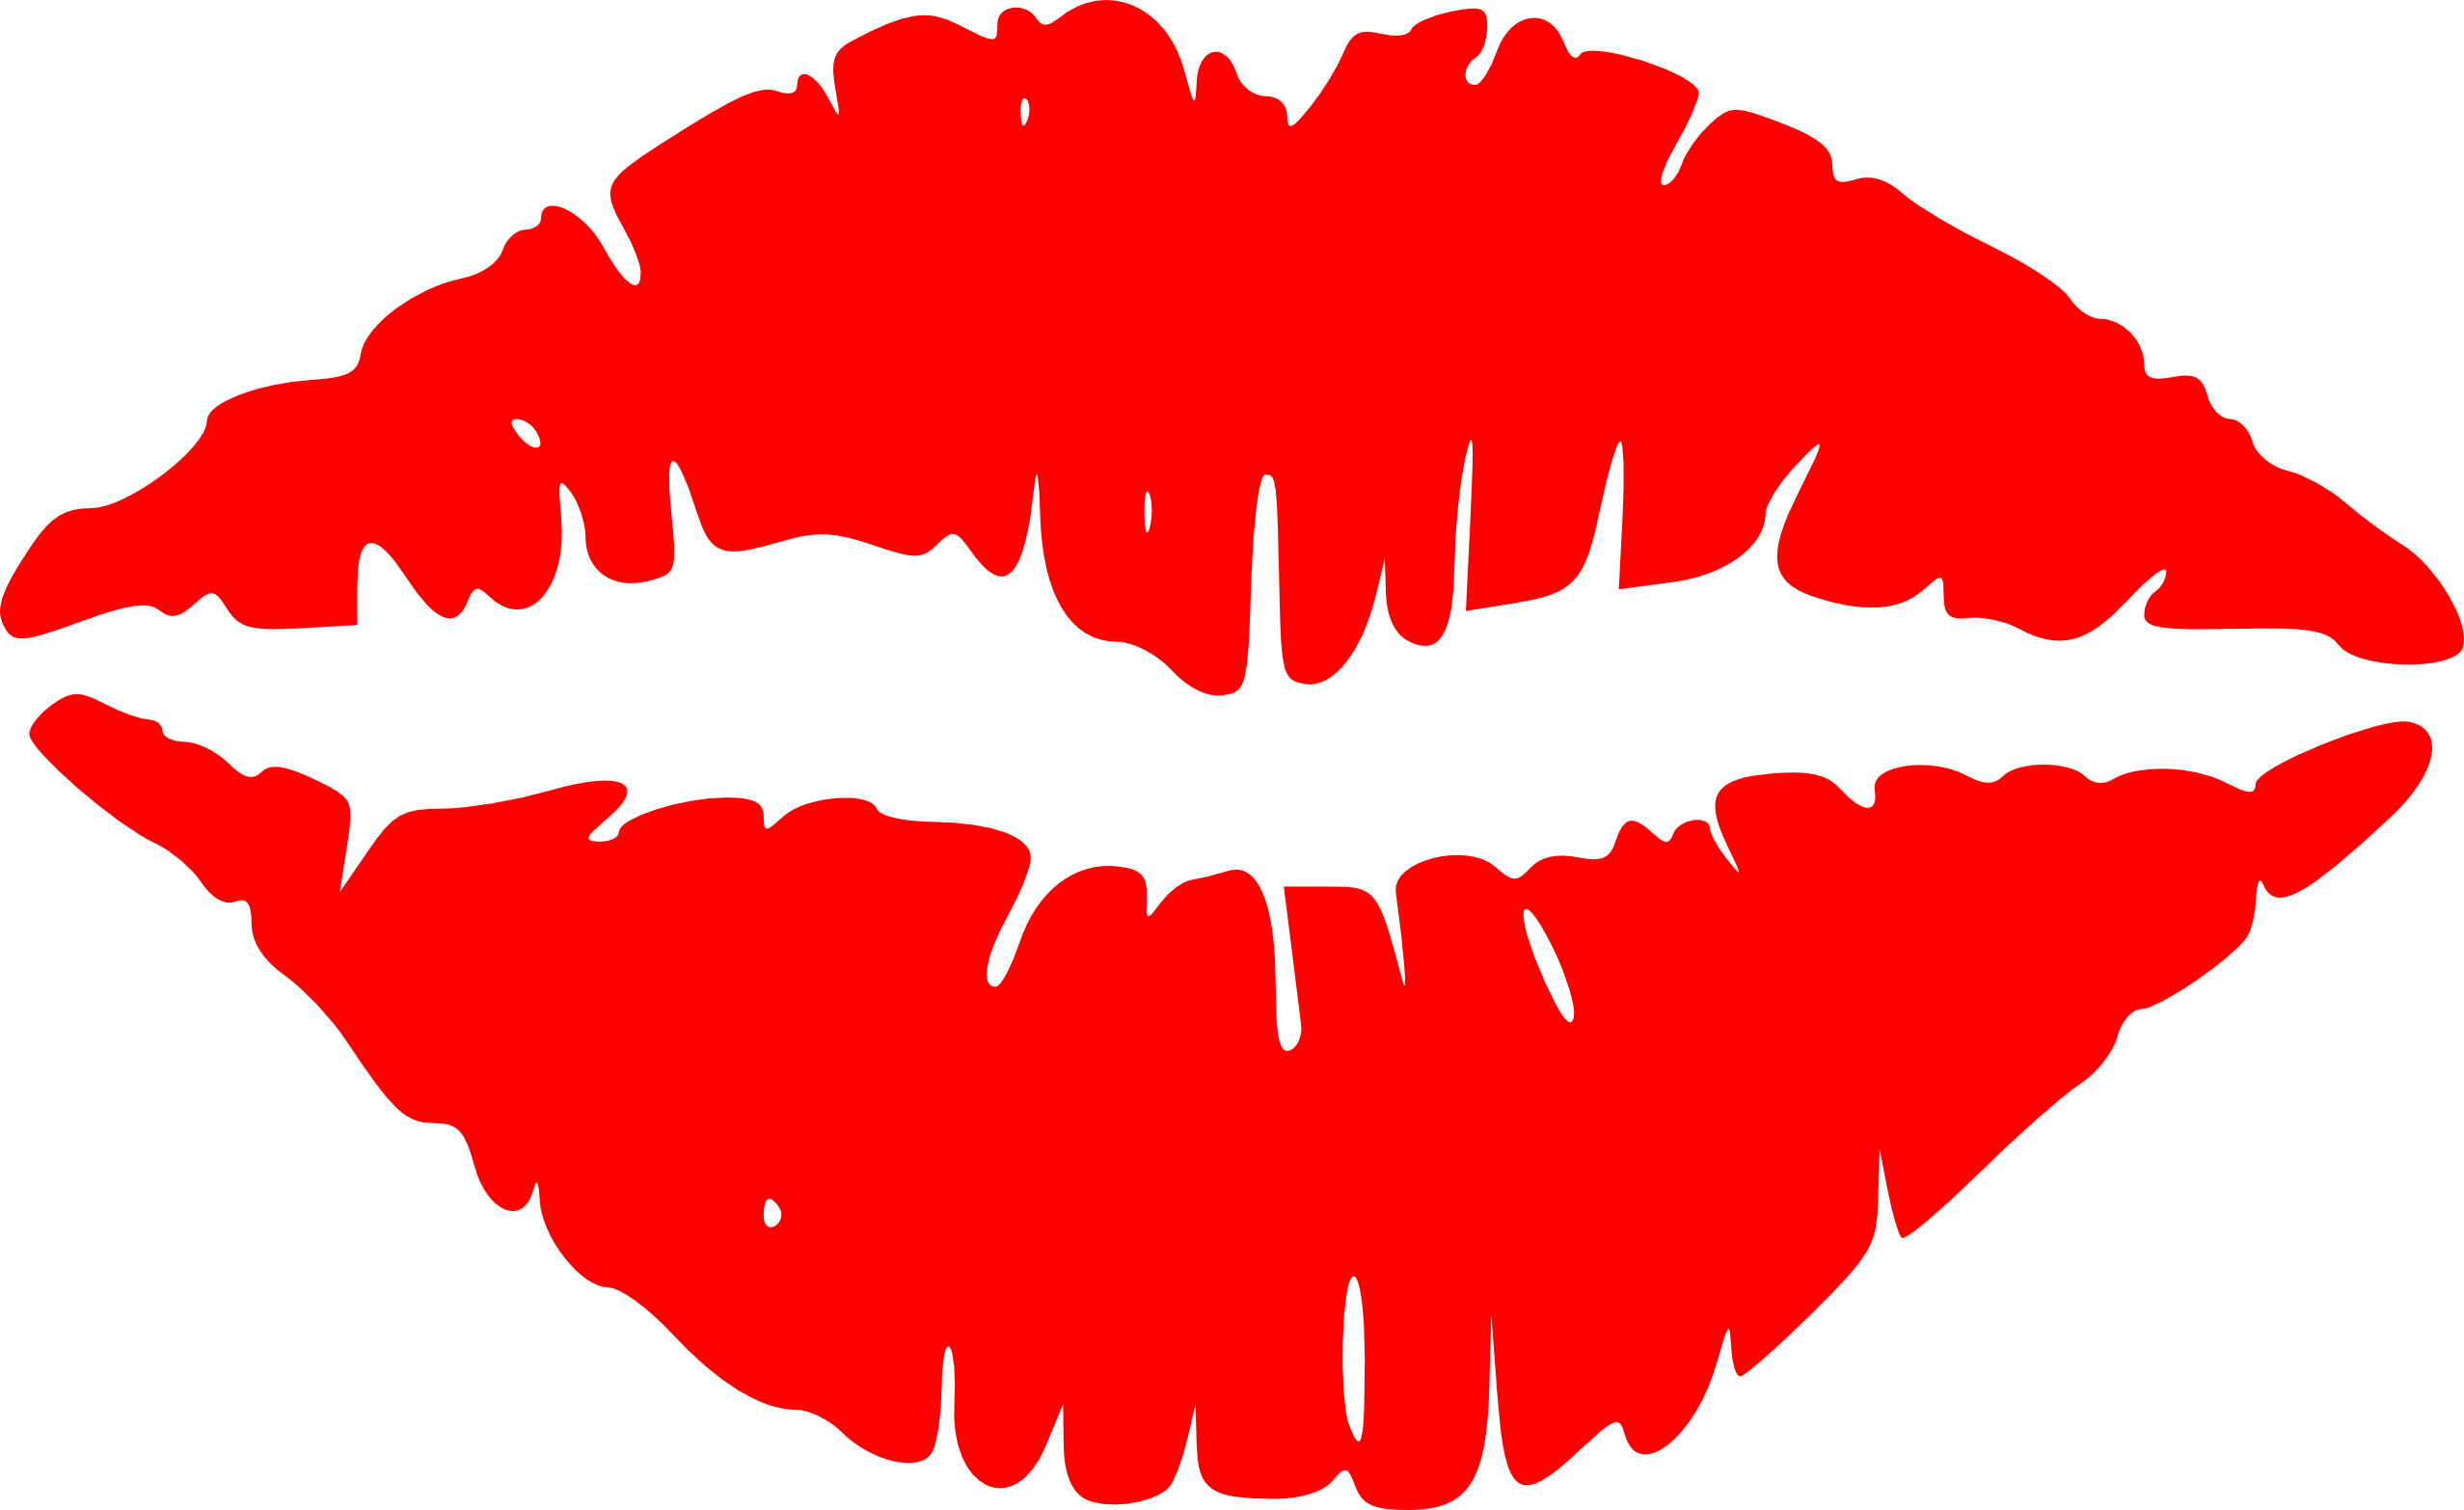 Lipstick clipart clear background. Lip mouth kiss clip